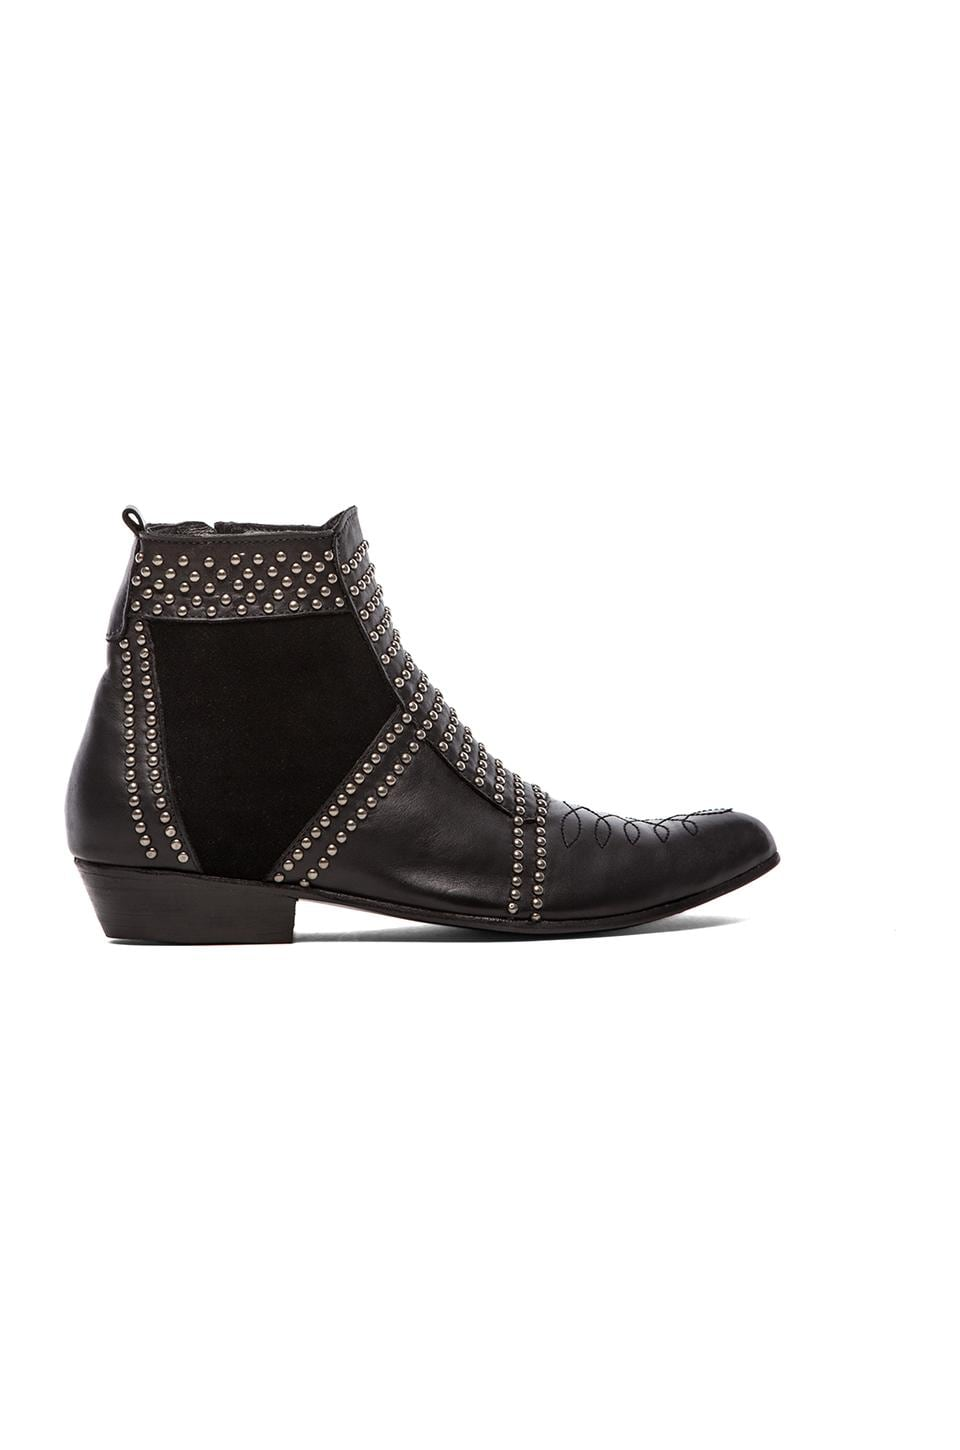 ANINE BING Boots with Studs en Black/Silver